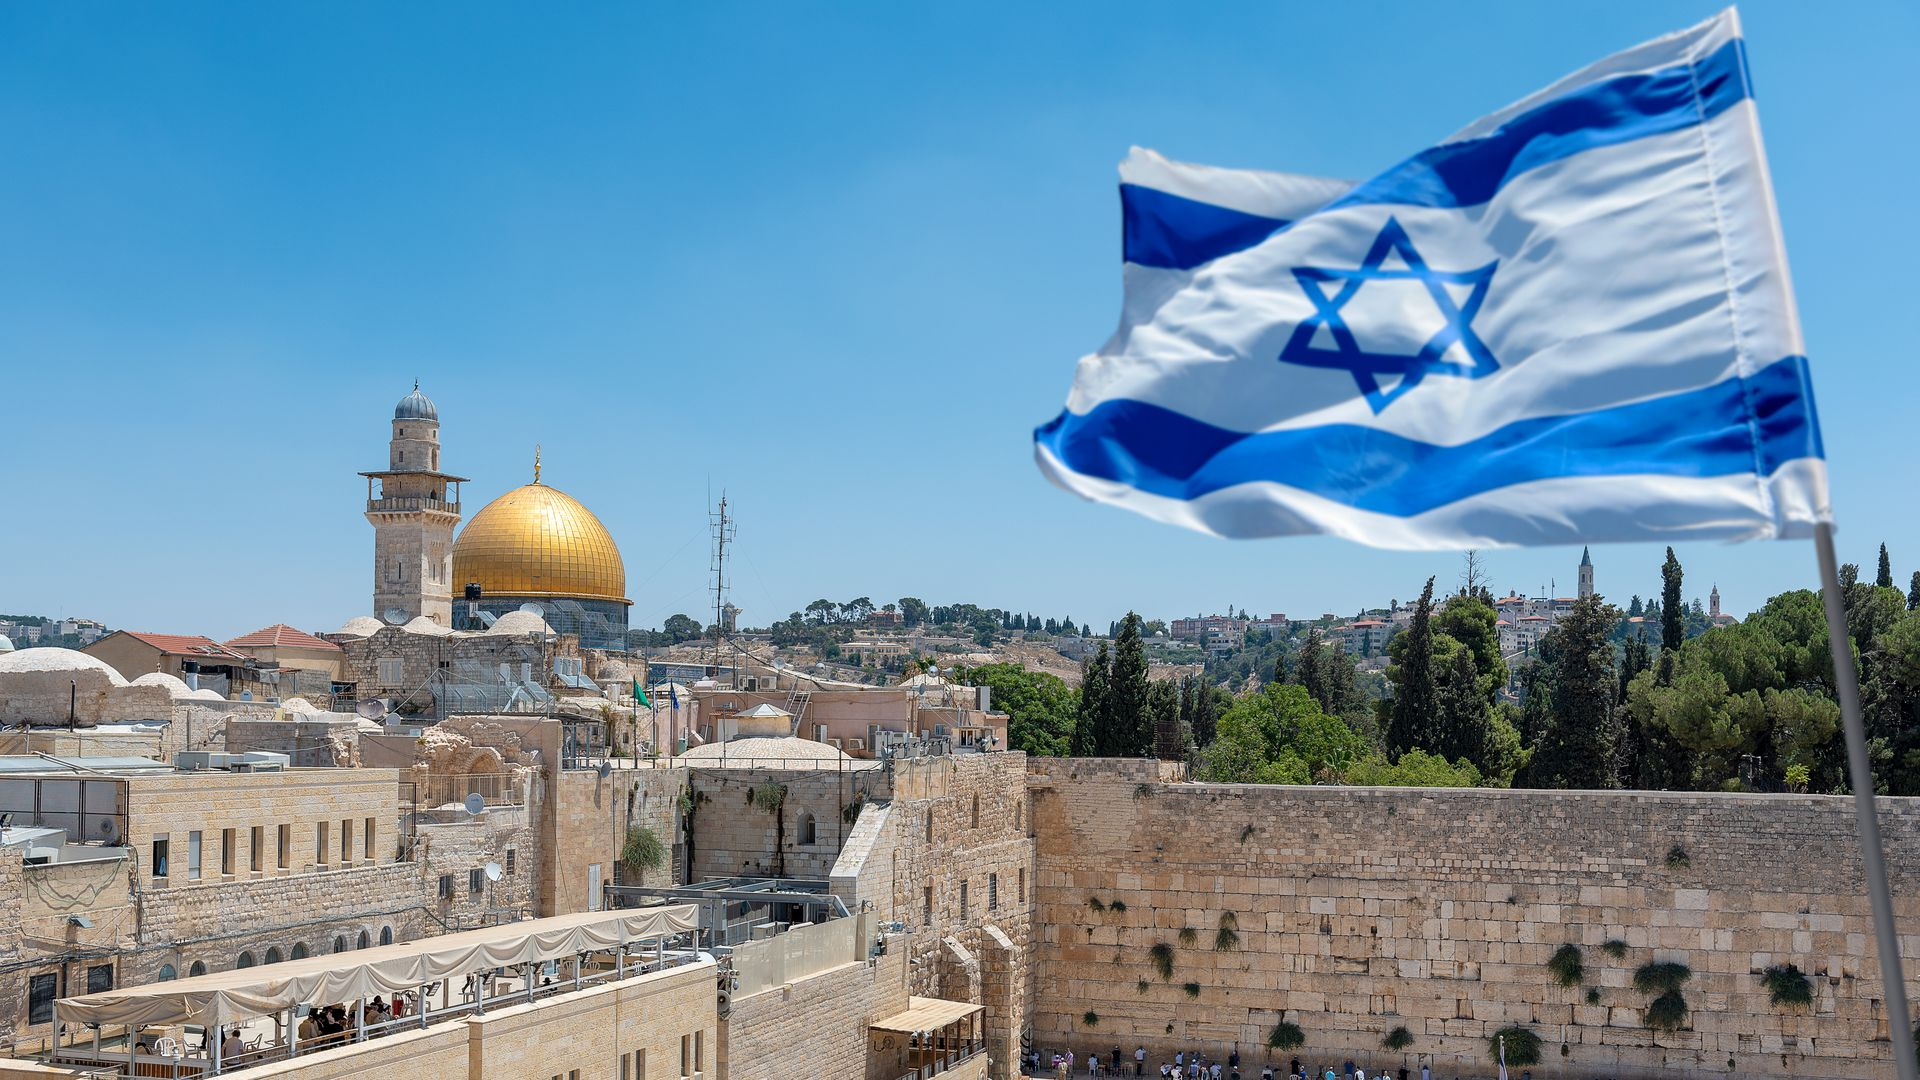 The Wailing Wall and Israeli flag with Al-Aqsa mosque in the background